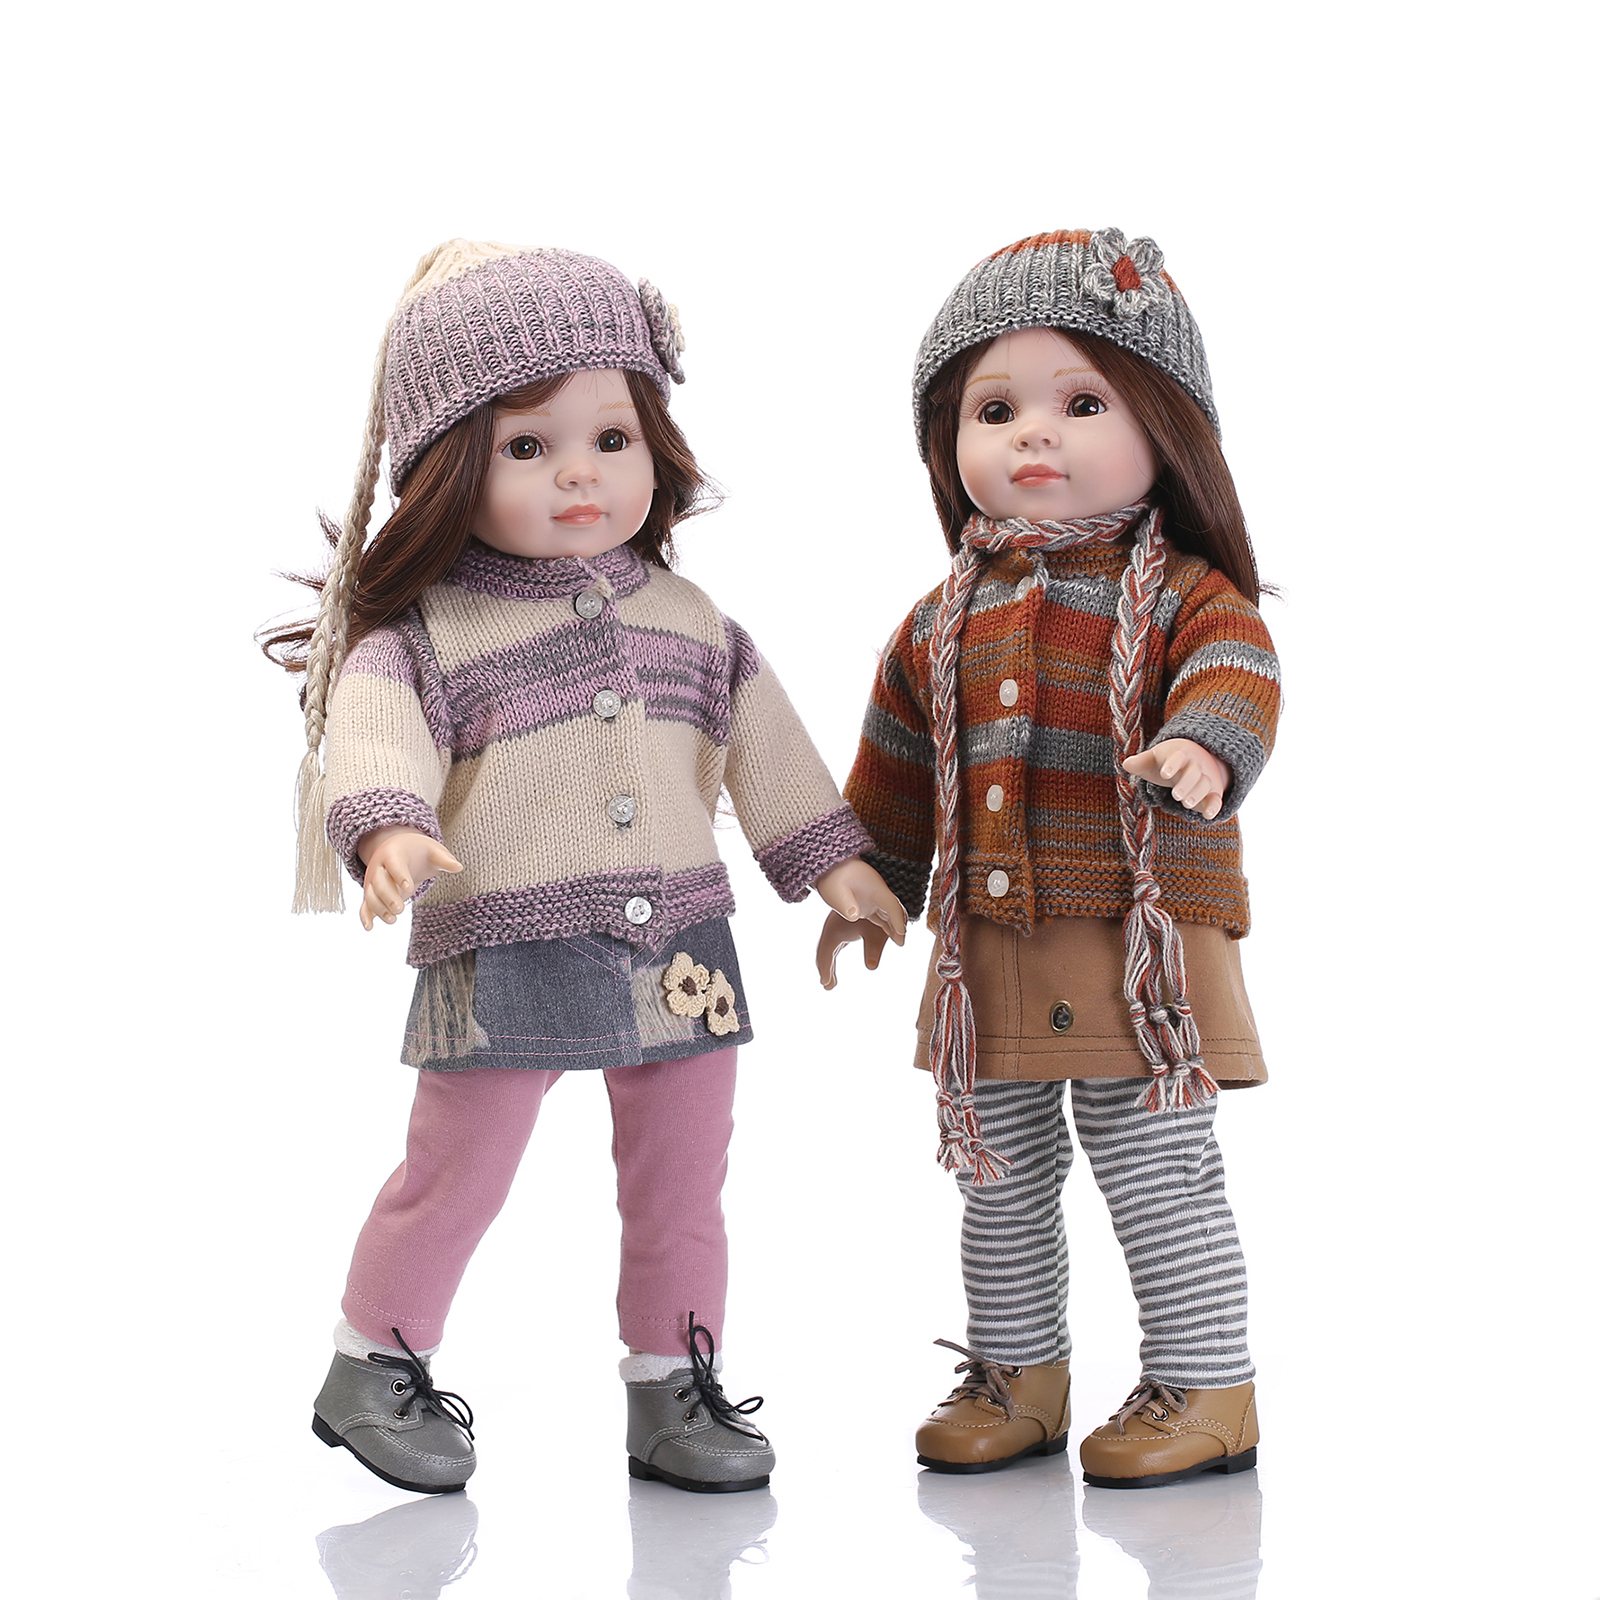 Silicone Reborn Bebe Popular American Doll Journey Girl Toys for Girls Birthday Christmas Gift